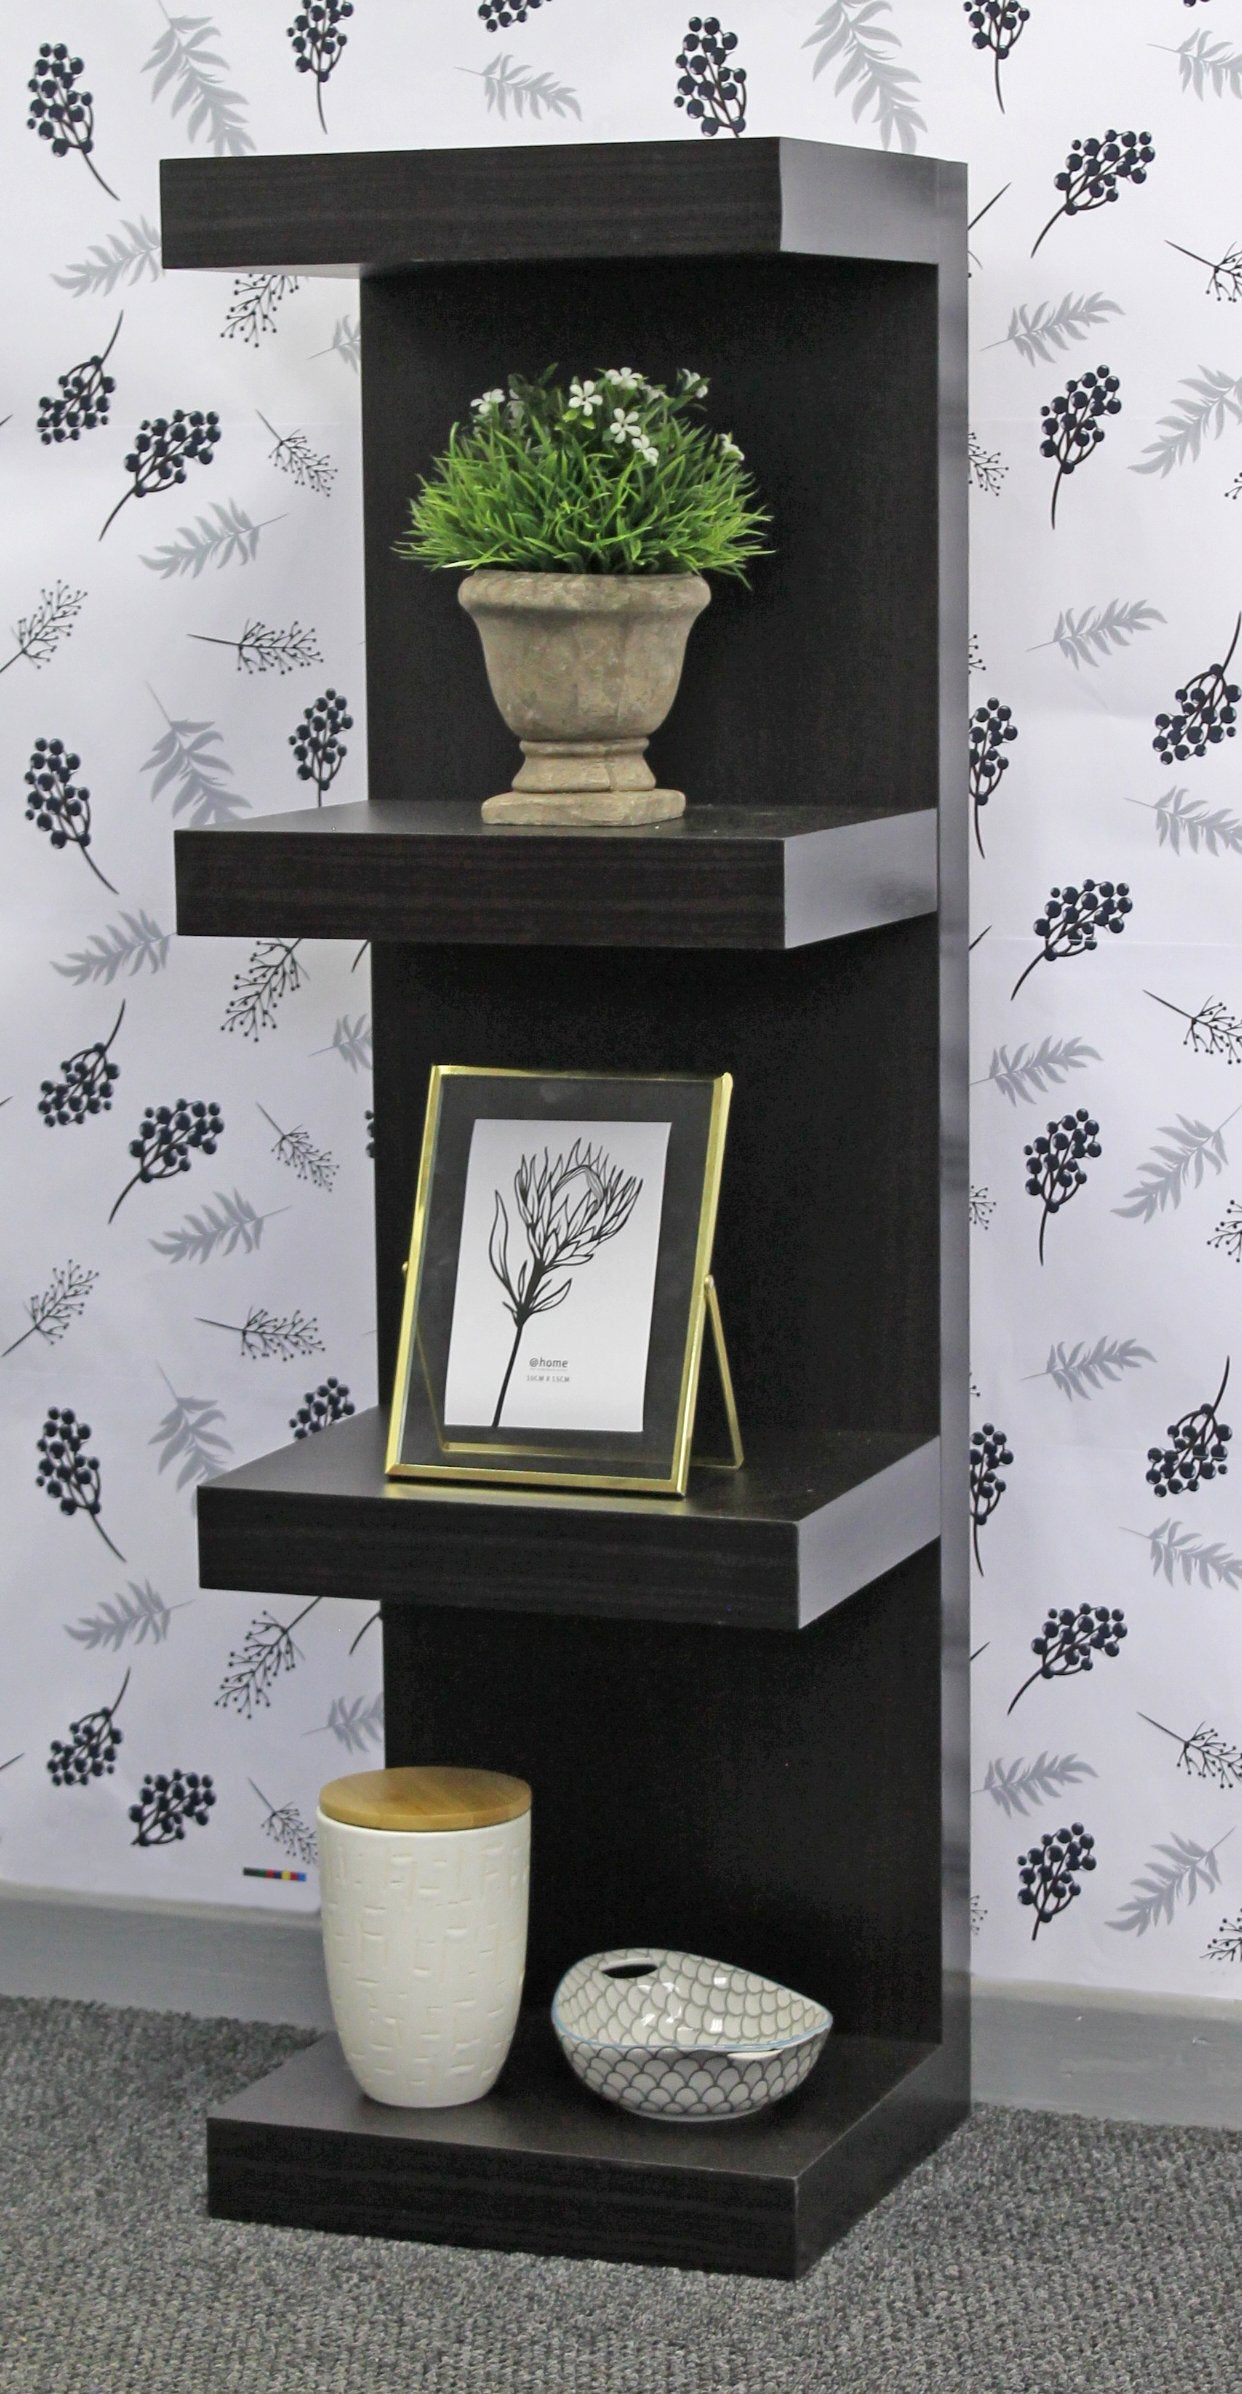 Juno Shelves - Piller - 4 shelf - Black Wood Grain